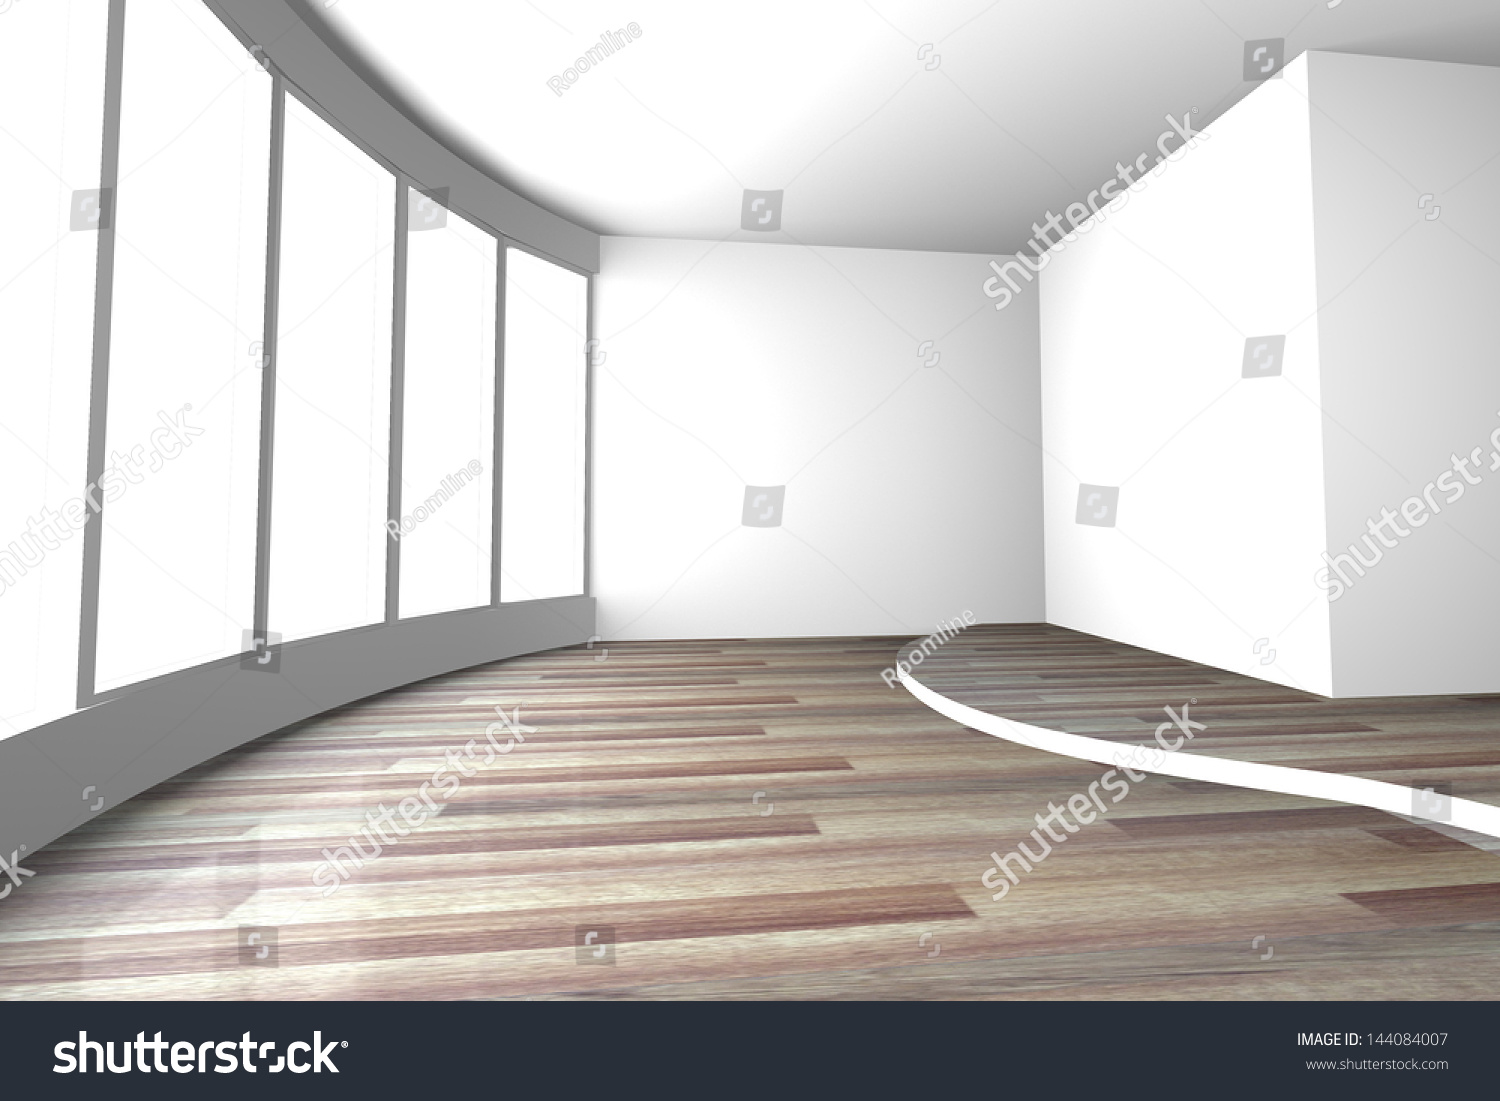 White Curve Space Empty Room For Interior Design Present Of Living Room And Meeting Room Stock